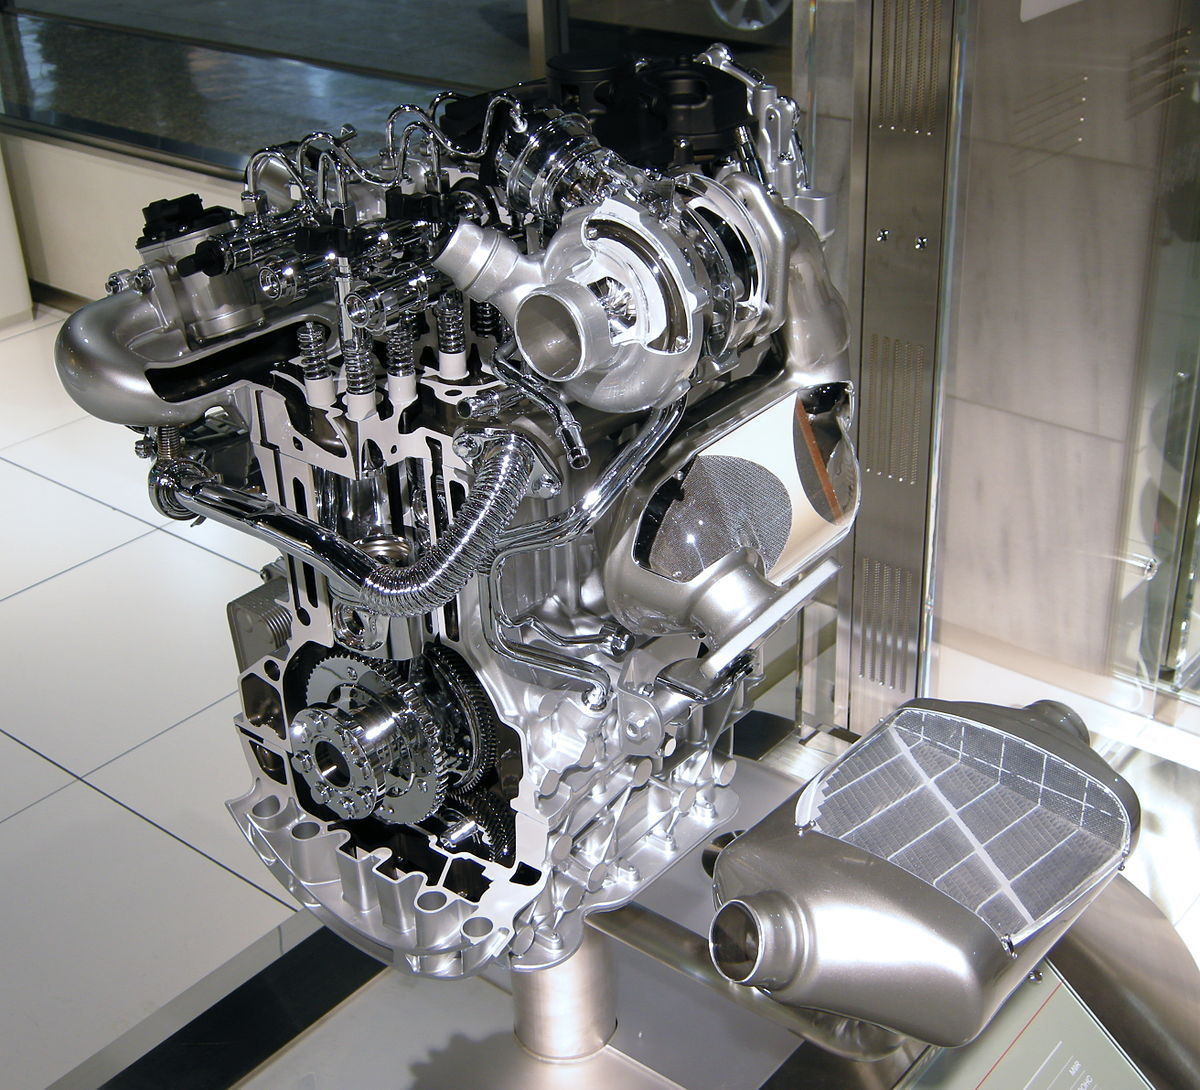 Image Cda Aa Eec A Dcf B C F C F E additionally Nissan Timing Chain Procedure in addition Motorsport Billet Catch Can Cutaway Render furthermore Maxresdefault likewise Bmw Series. on 3 6 timing chain replacement